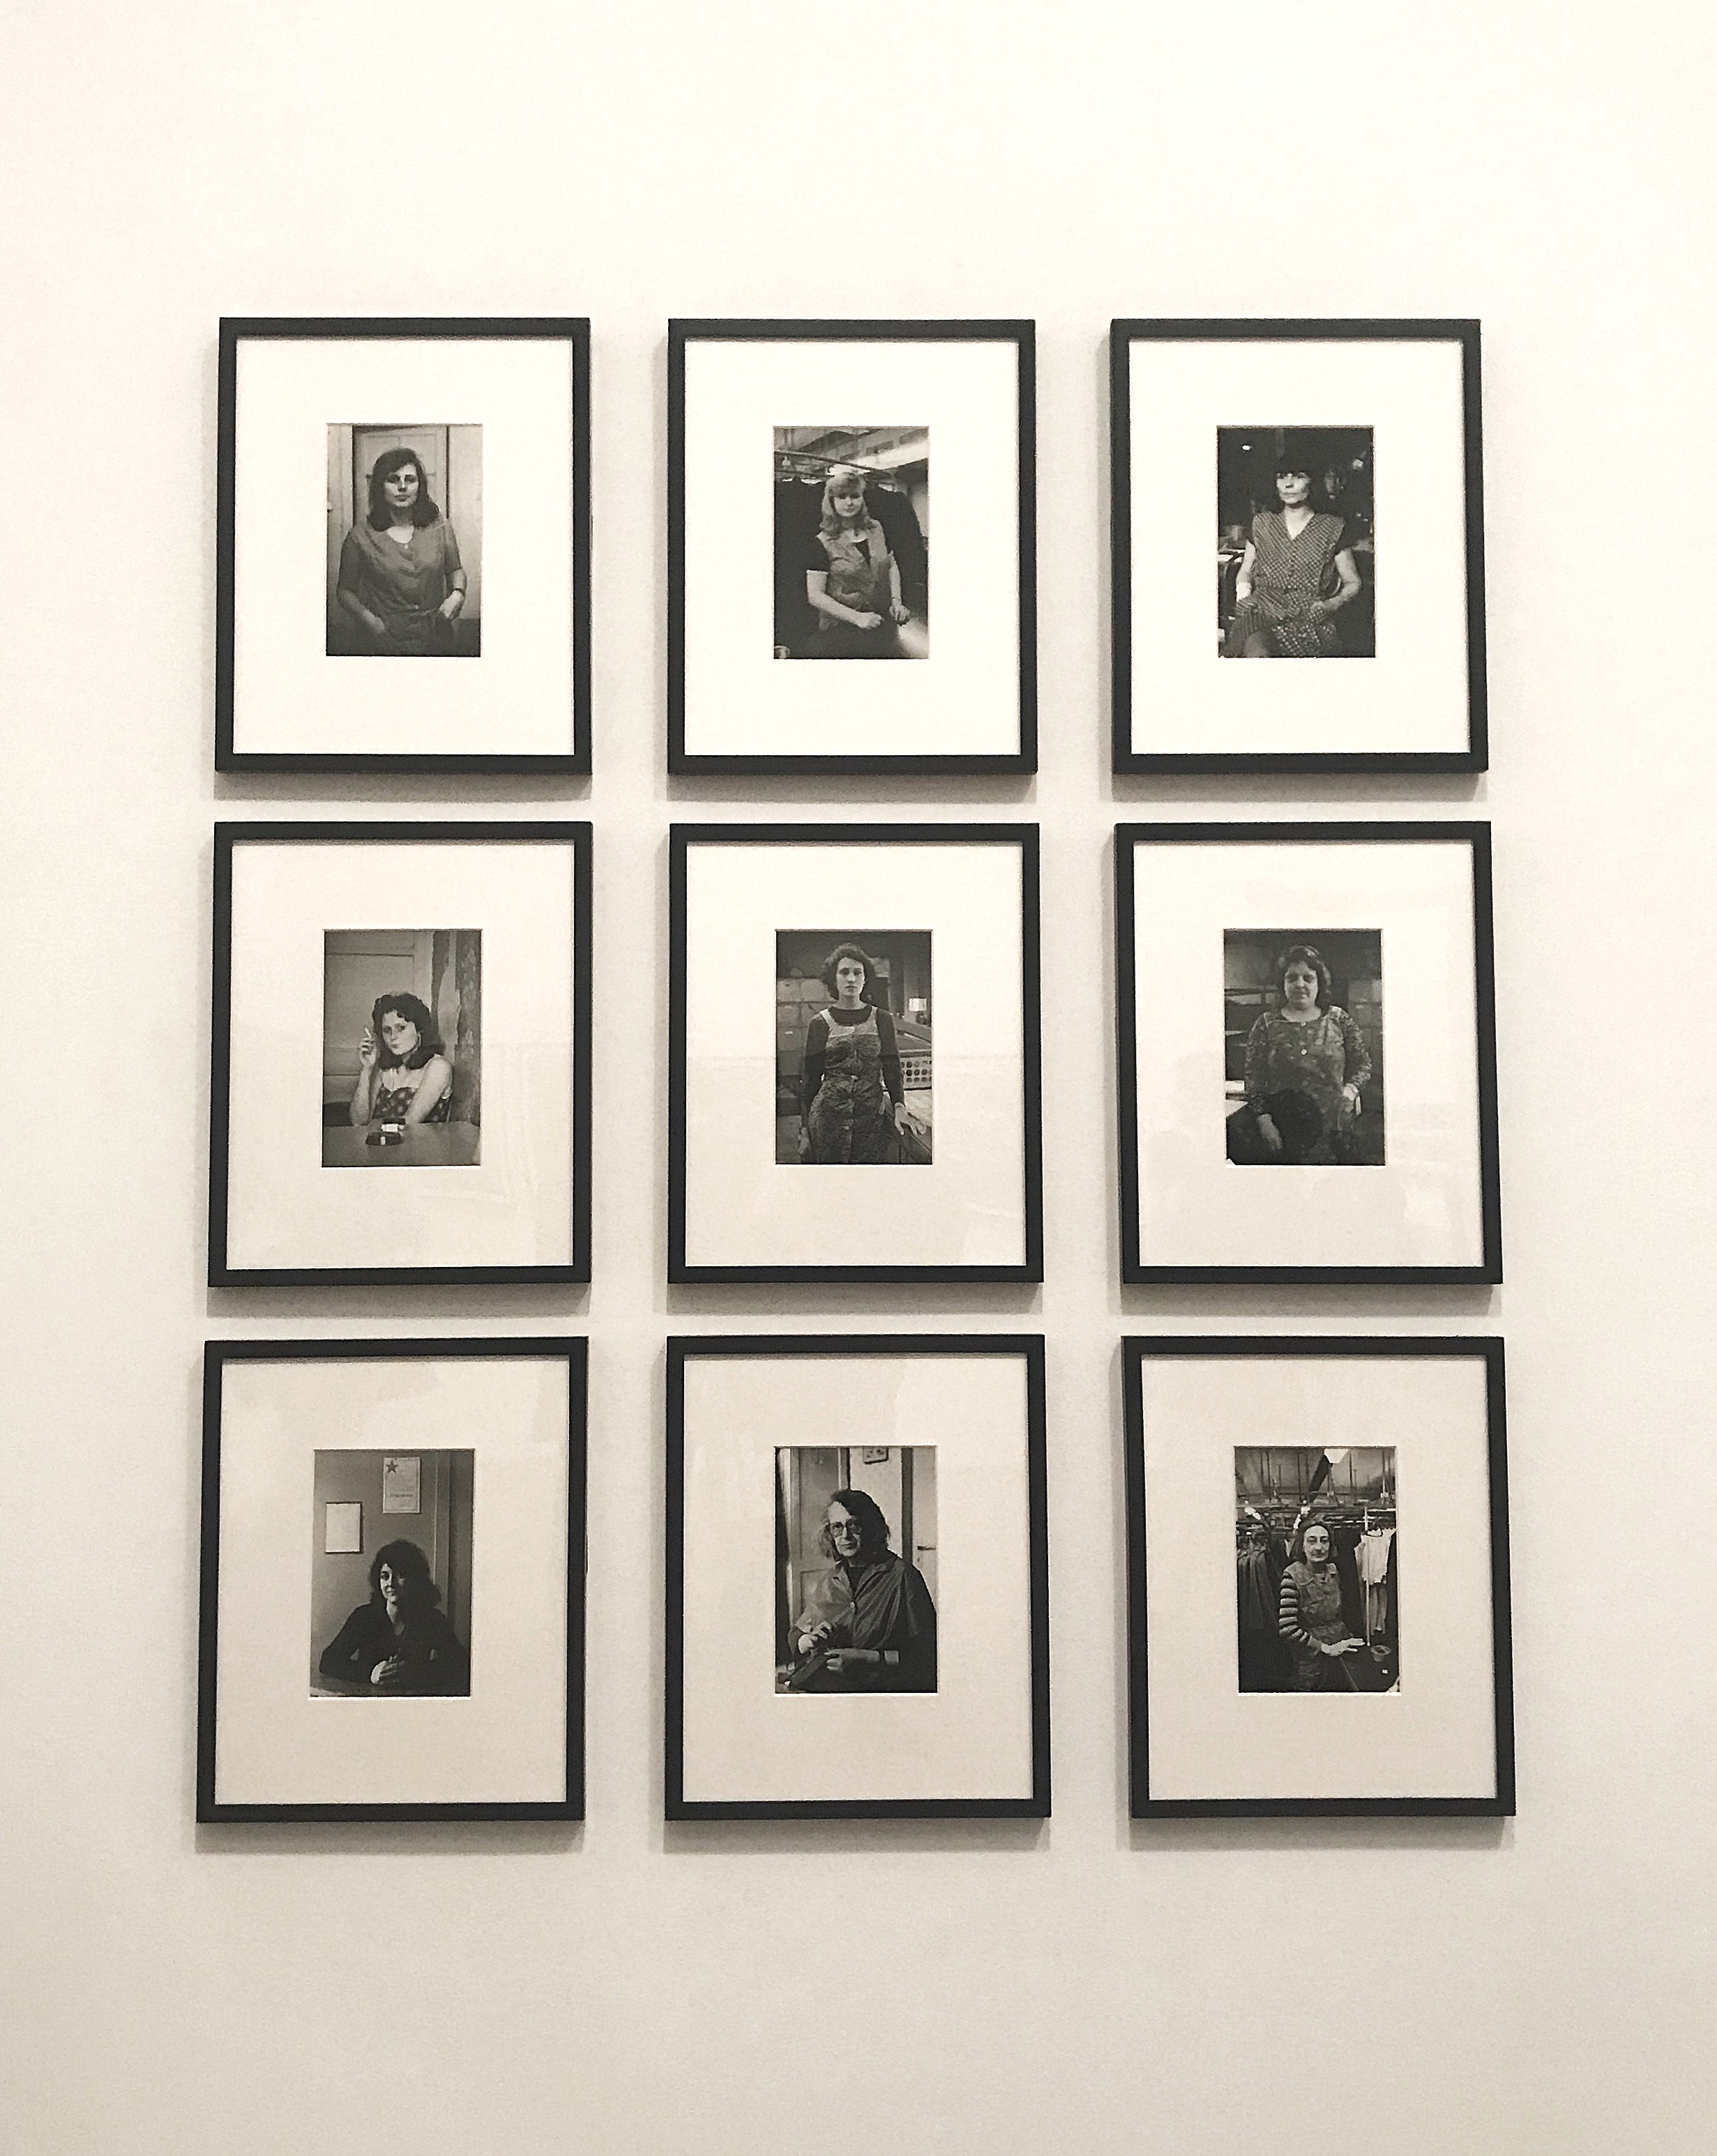 Melanie's photograph of the Helga Paris series at the Tate Modern. She was assigned the specific image of the woman smoking a cigarette— the first photograph to the far left in the second row.